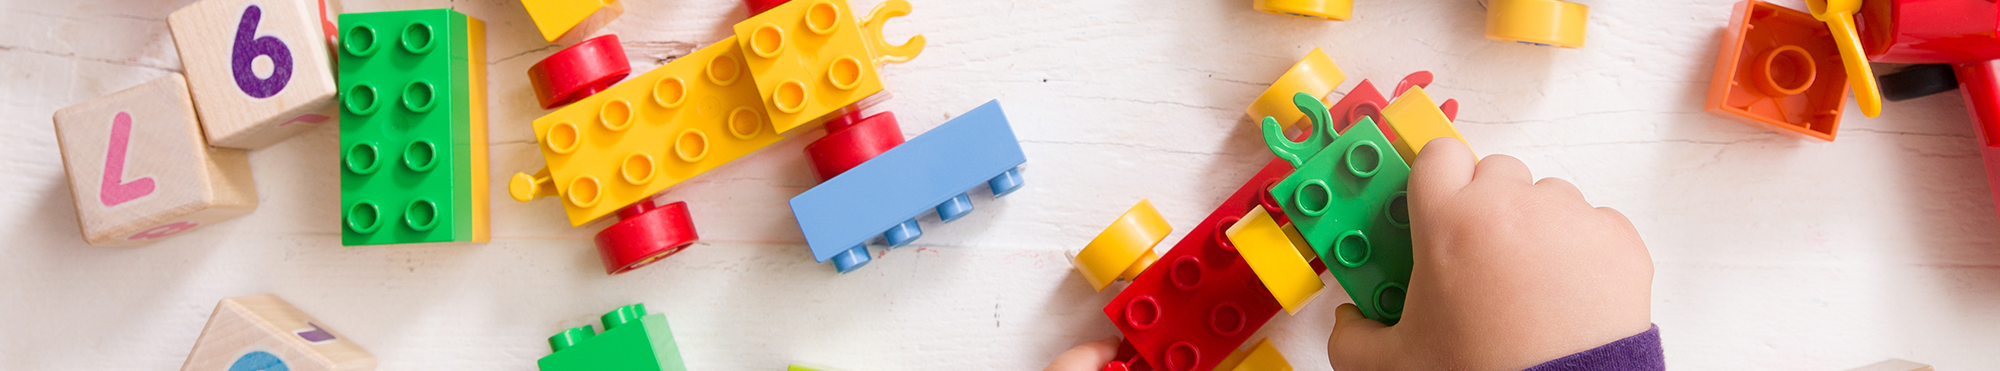 Child's hands play with lego blocks and wood blocks on a wood table